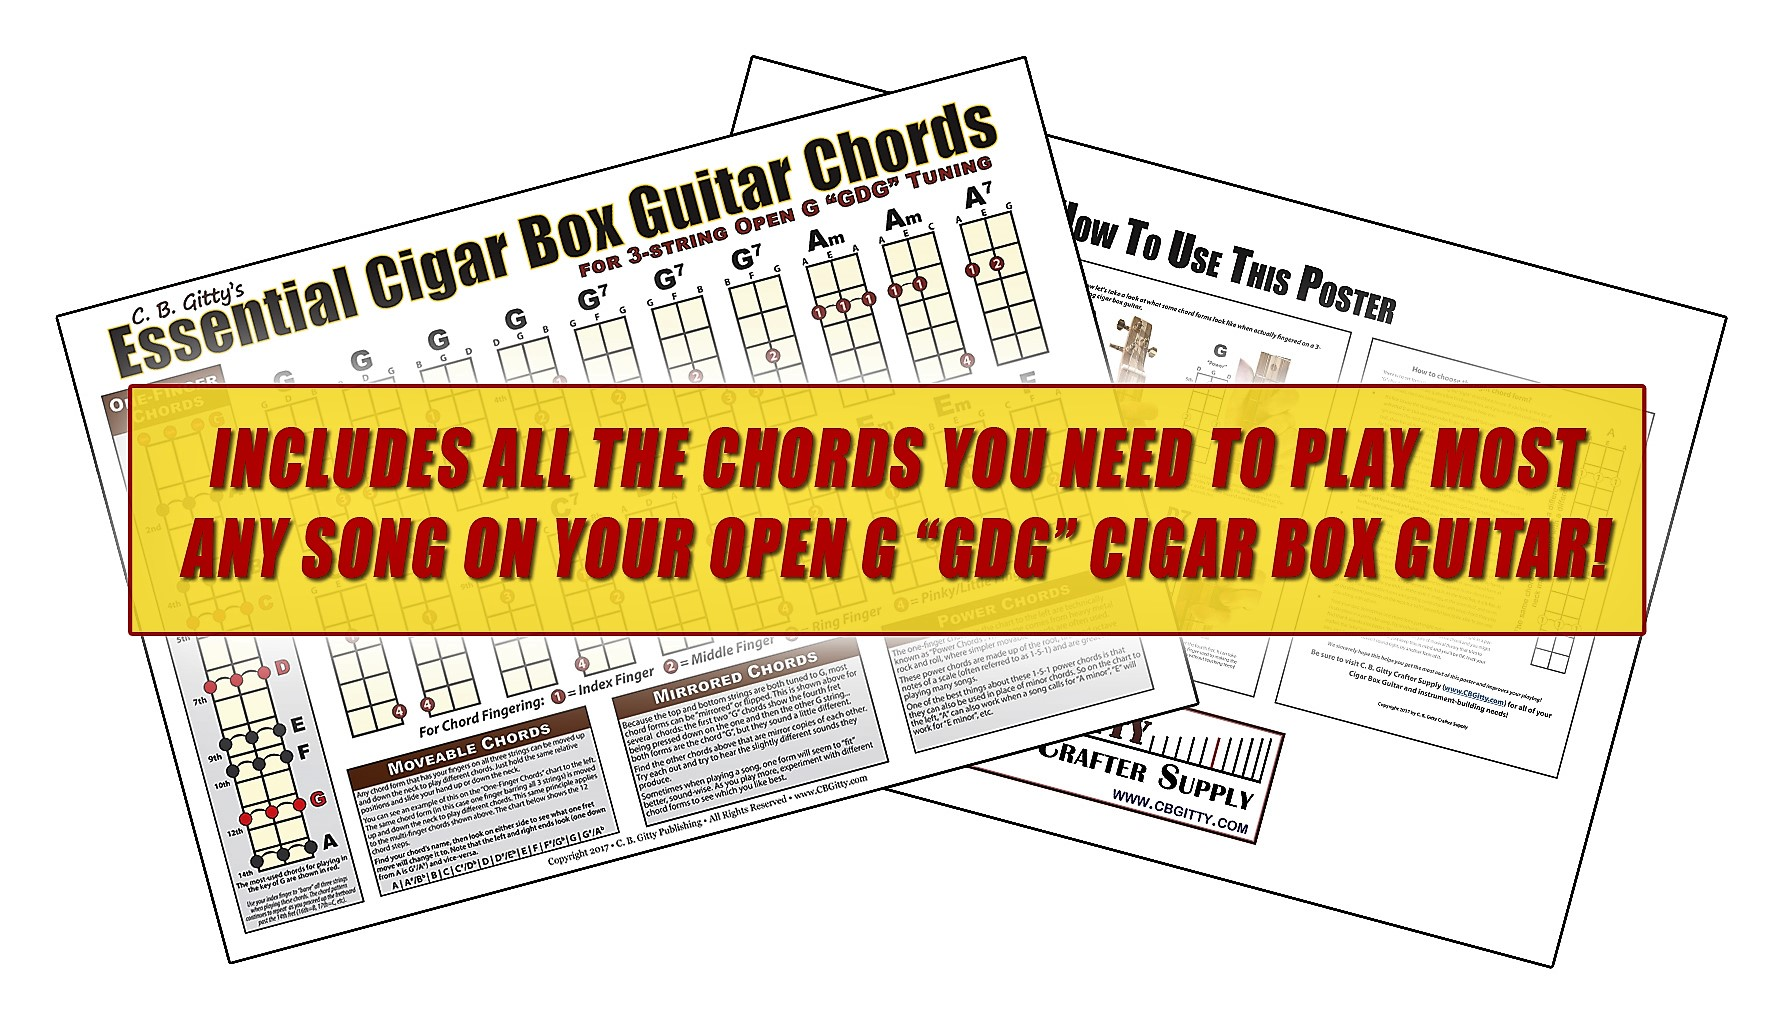 3 String Cigar Box Guitar Chord Forms Made Easy The Ultimate Guide How To Read Chart Diagram Open G Gdg Essential Chords Poster